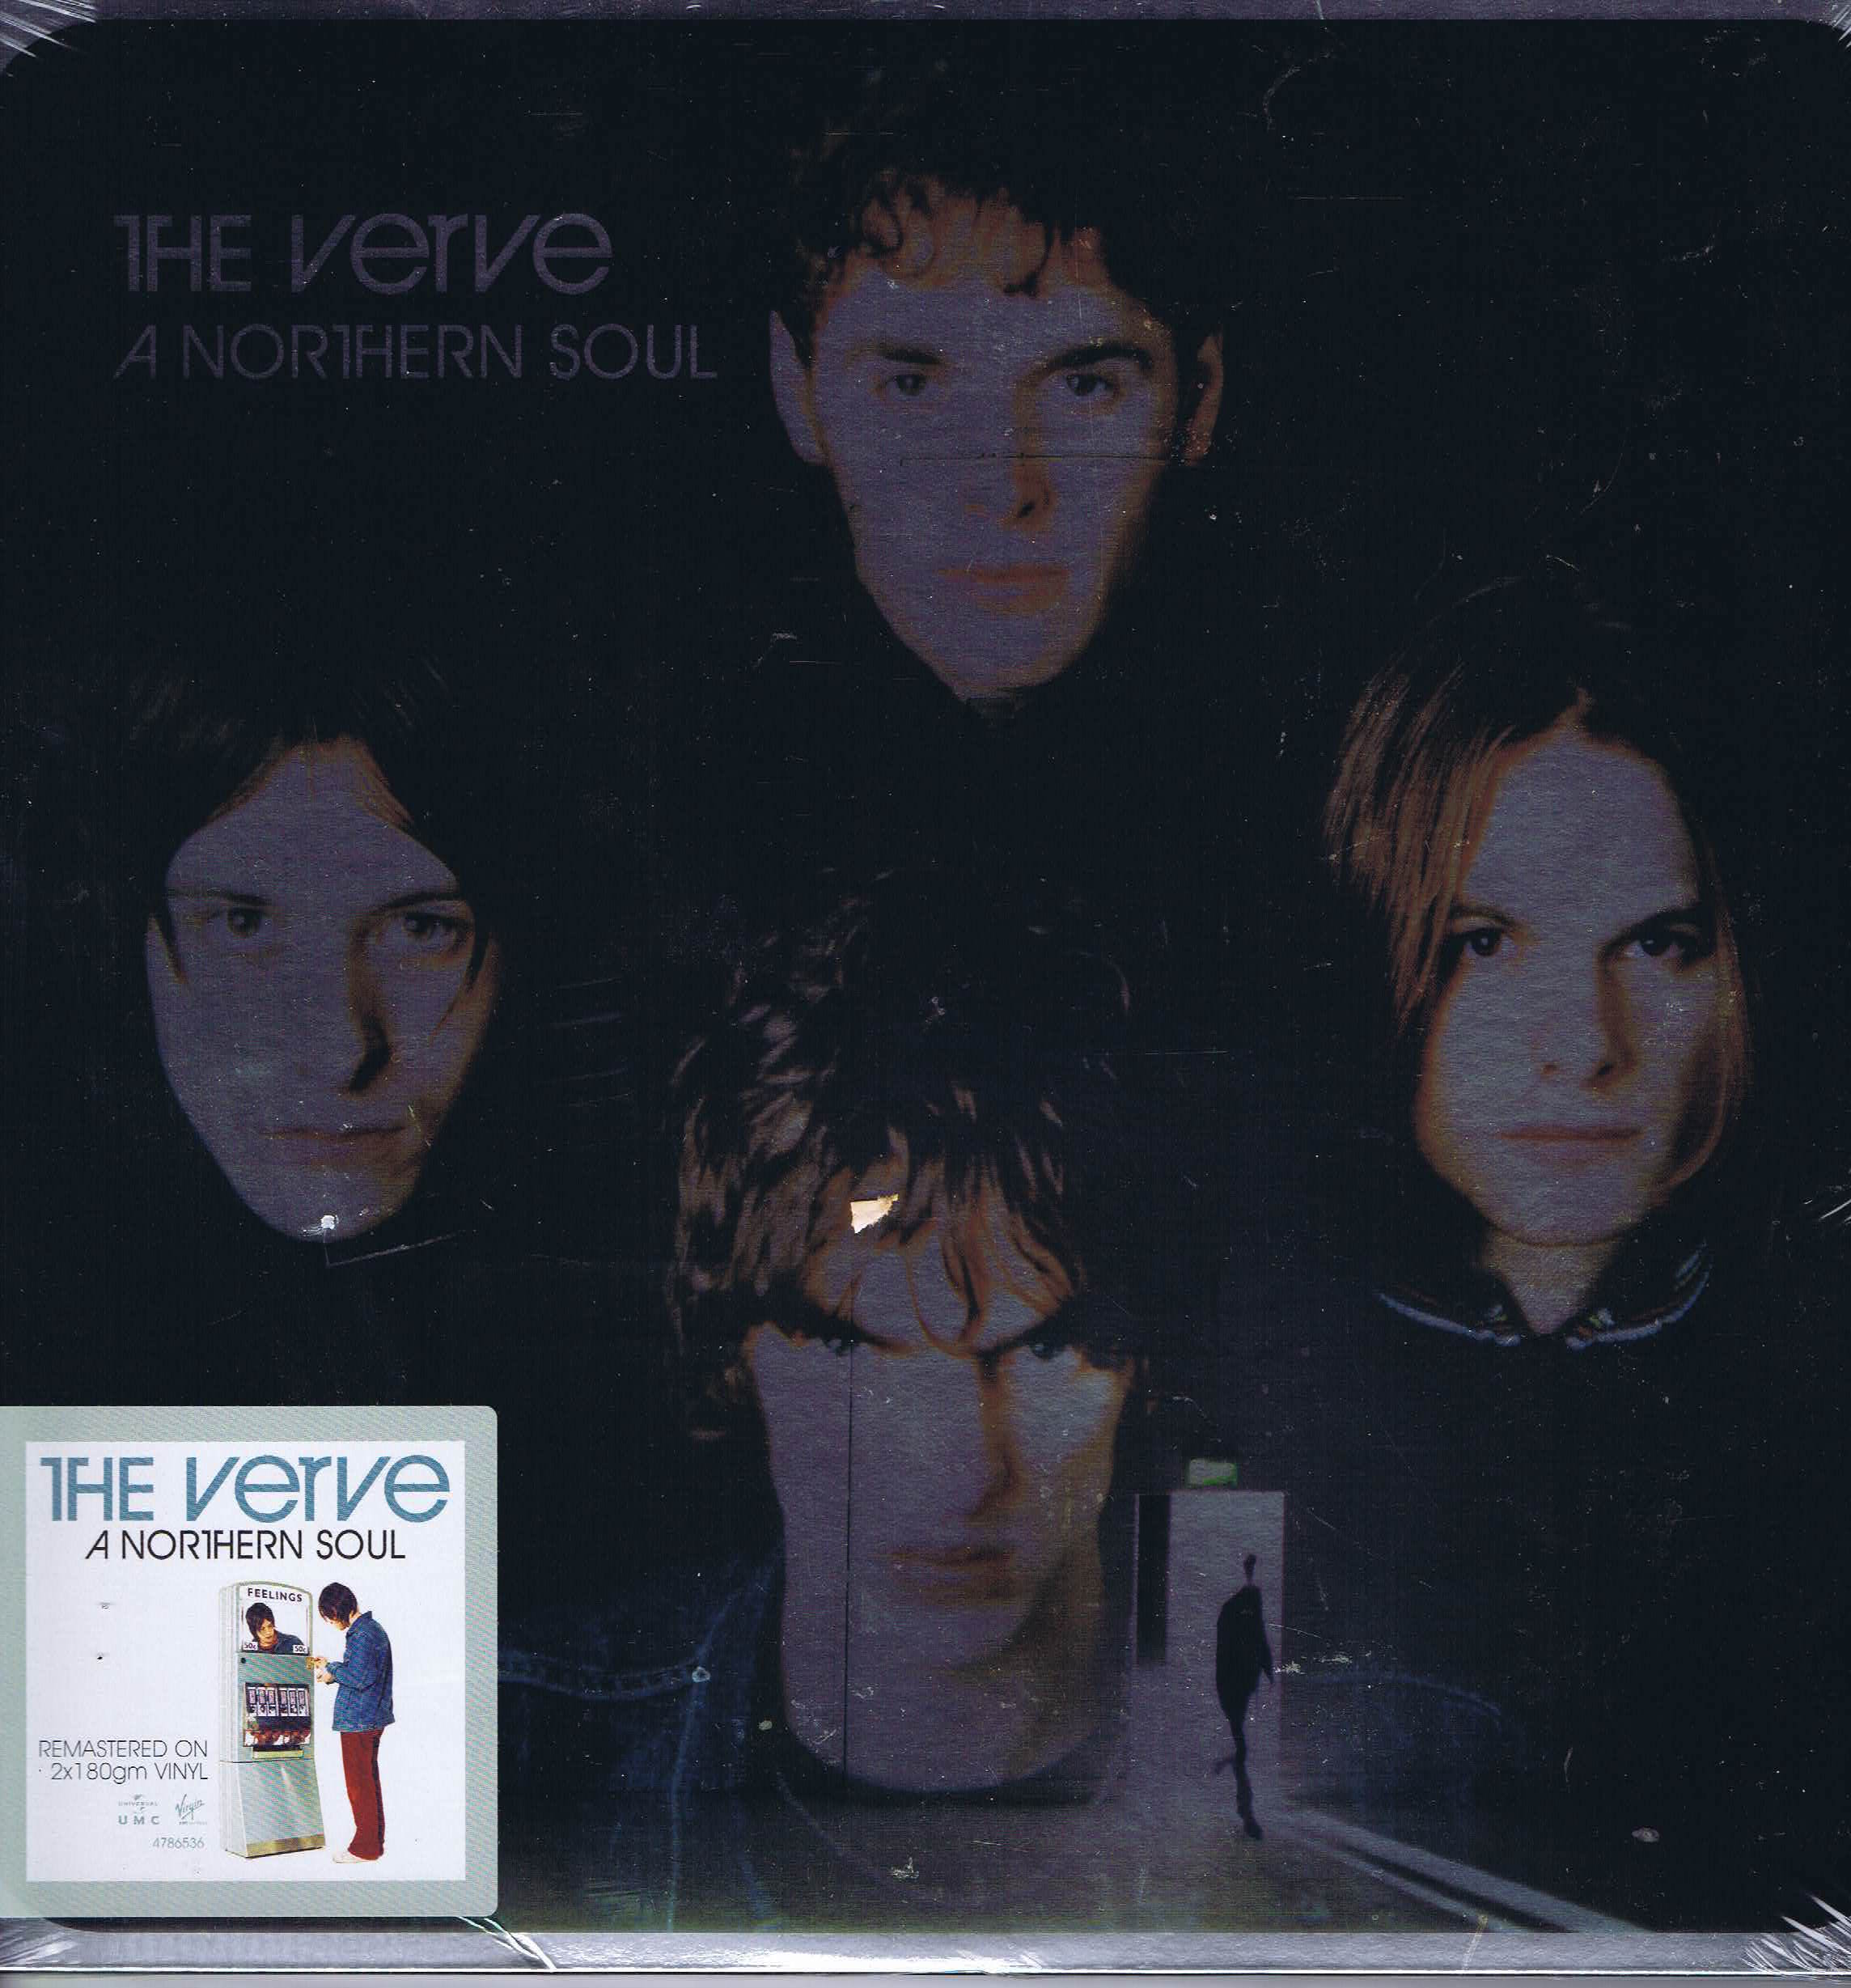 The Verve - A Northern Soul - 4786539 - 2-LP Vinyl Record